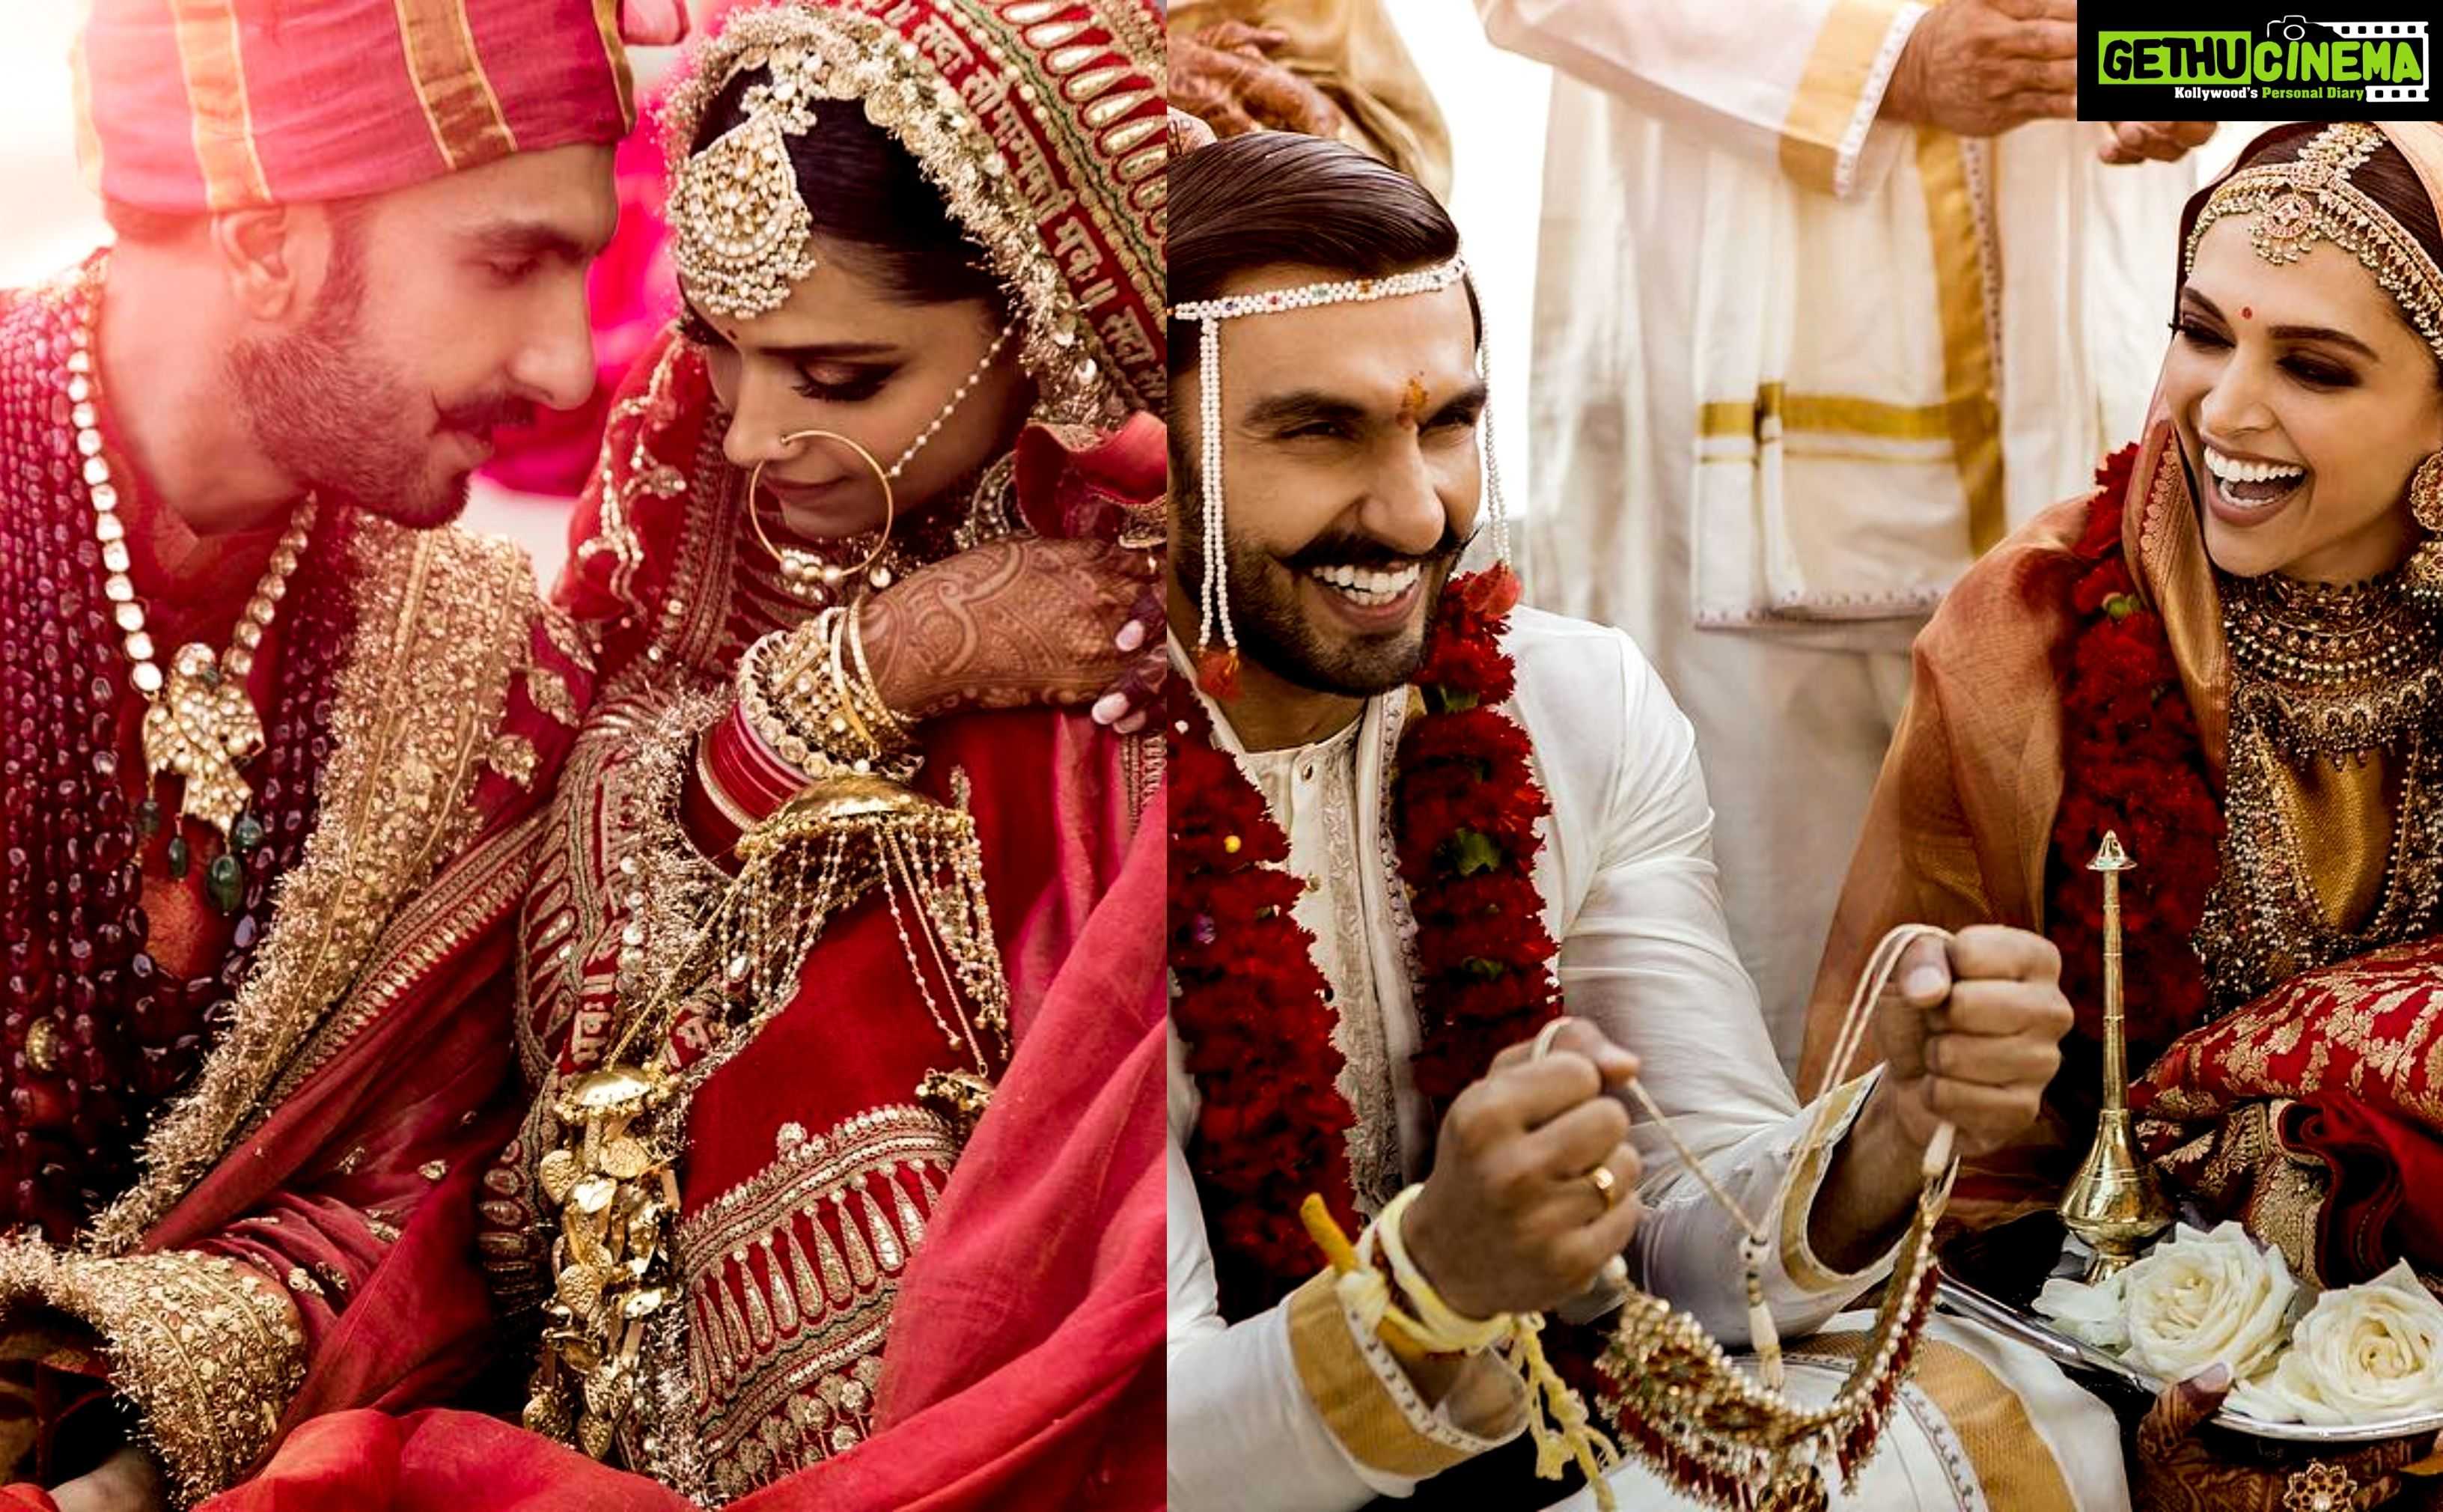 Actor Ranveer Singh Actress Deepika Padukone Wedding Photos Gethu Cinema Bollywood Wedding Deepika Padukone Ranveer Singh